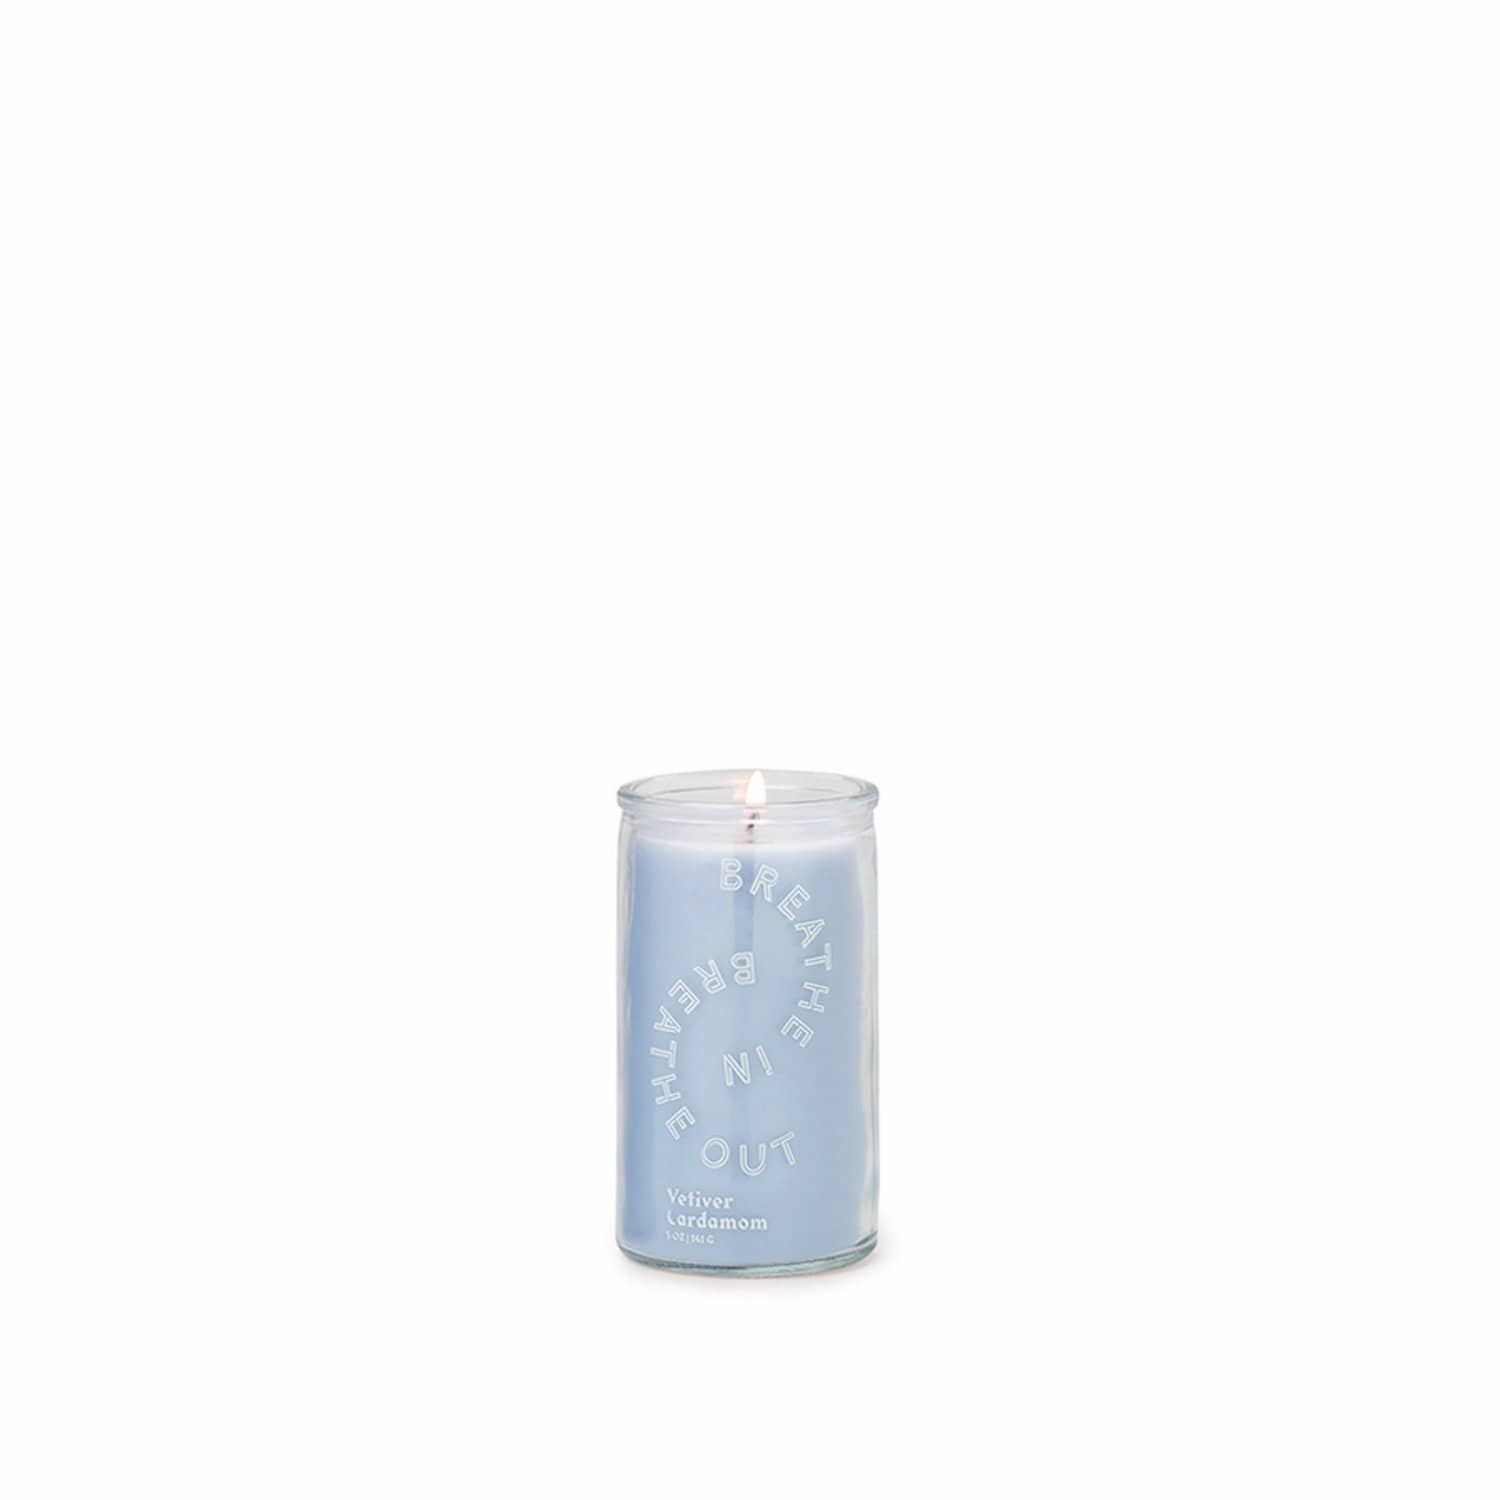 Breathe In Breathe Out 5 oz. Spark Prayer Candle - Vetiver Cardamom